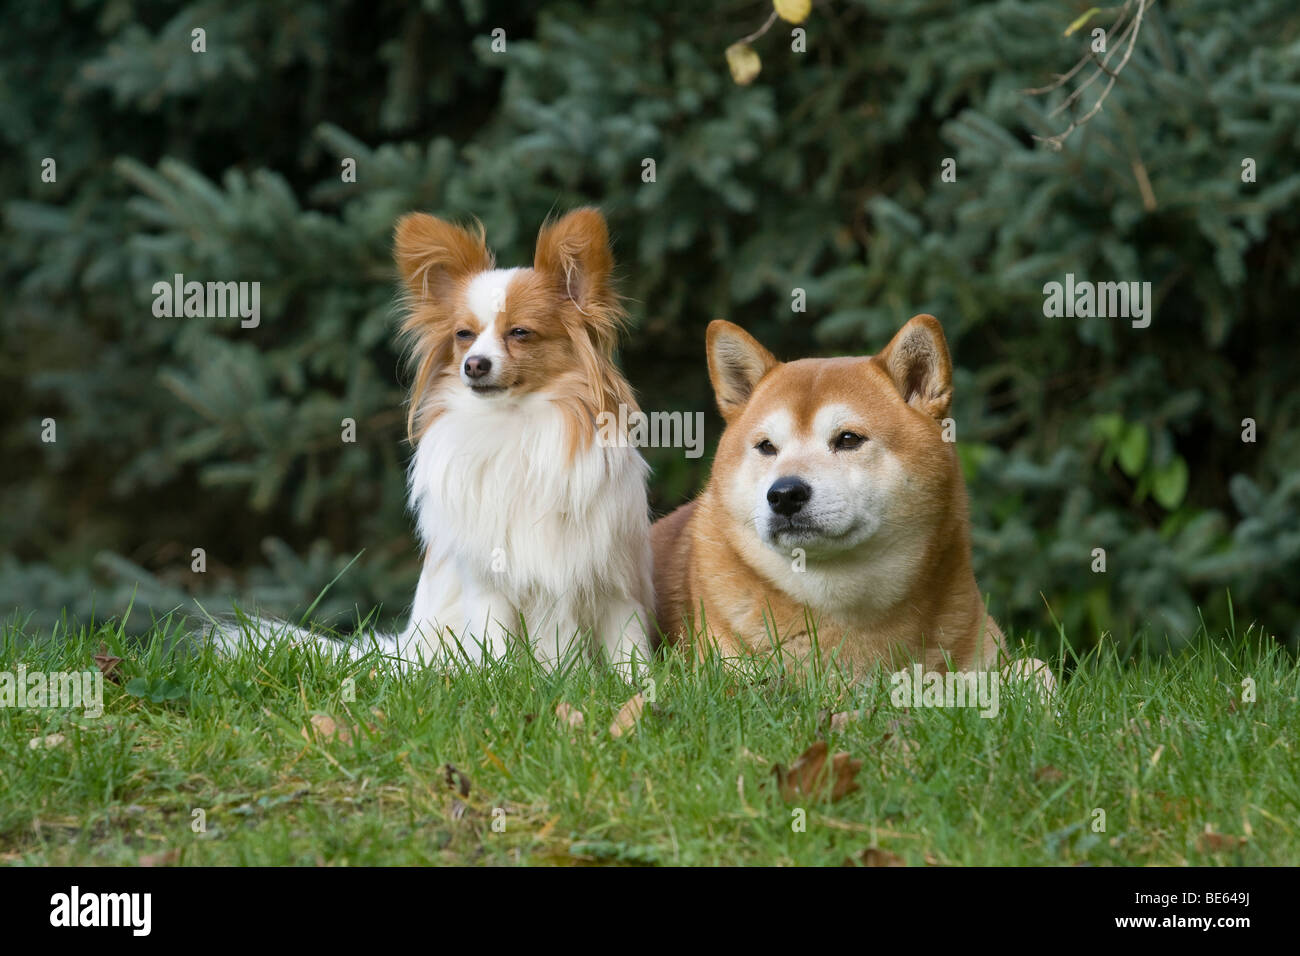 Papillon and Shiba Inu next to each other on a meadow - Stock Image